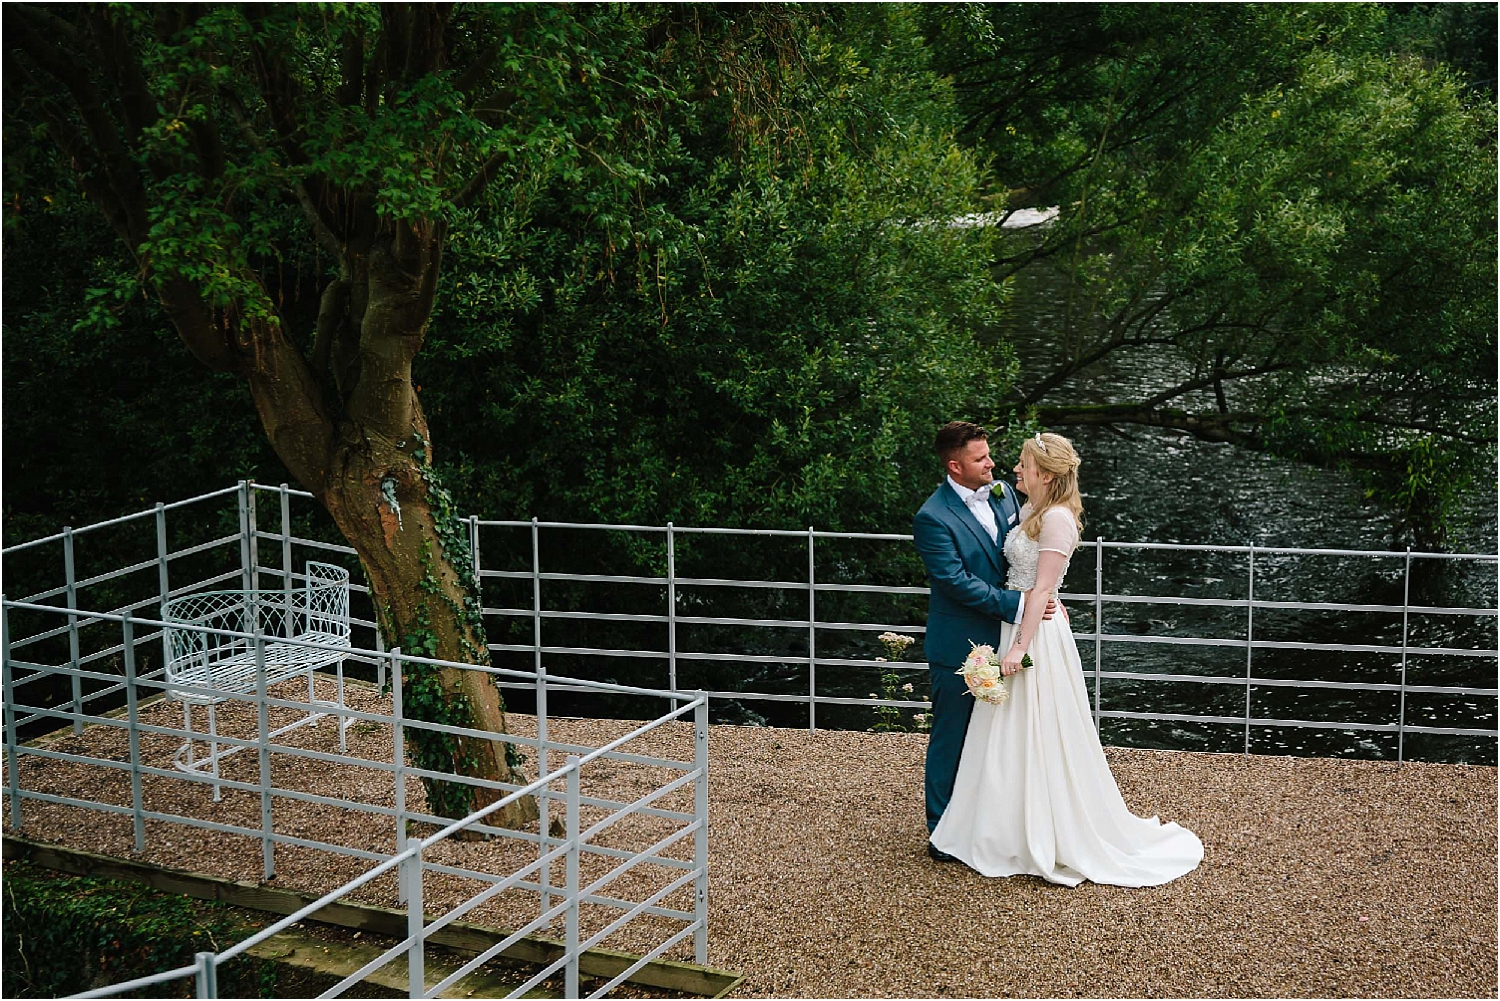 Wedding-west-mill-venue-professional-photographer-natural-documentary-nottingham-derby-287_BLOG.jpg